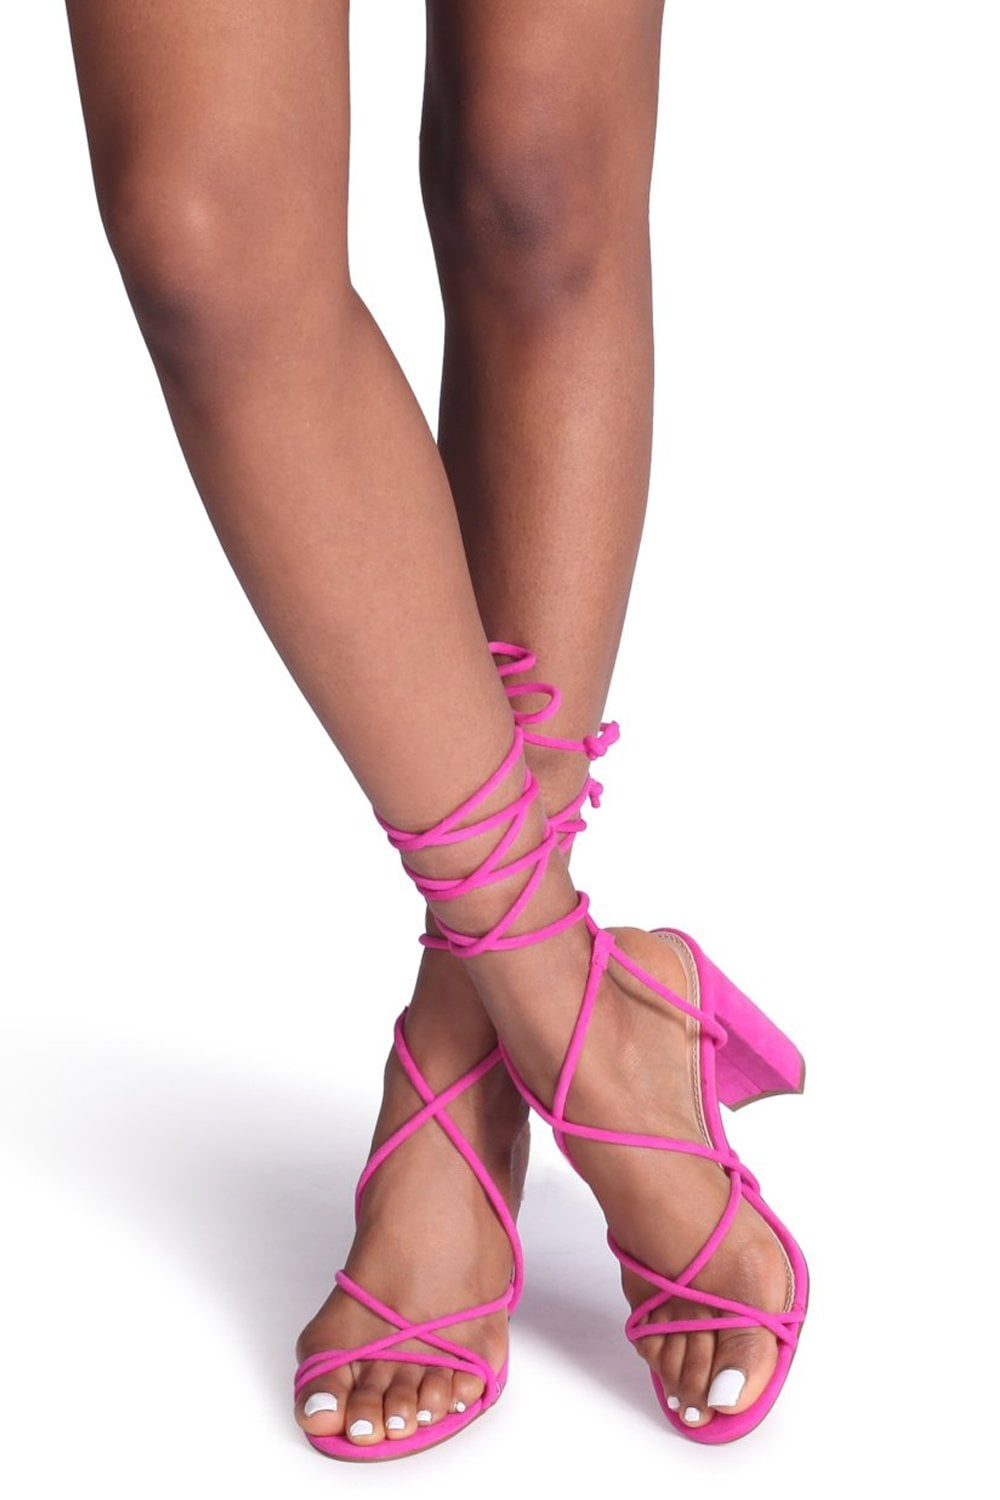 f50cc081f0 Linzi Twist Hot Pink Suede Lace Up Strappy Block Heeled Sandals - Linzi  from Little Mistress UK